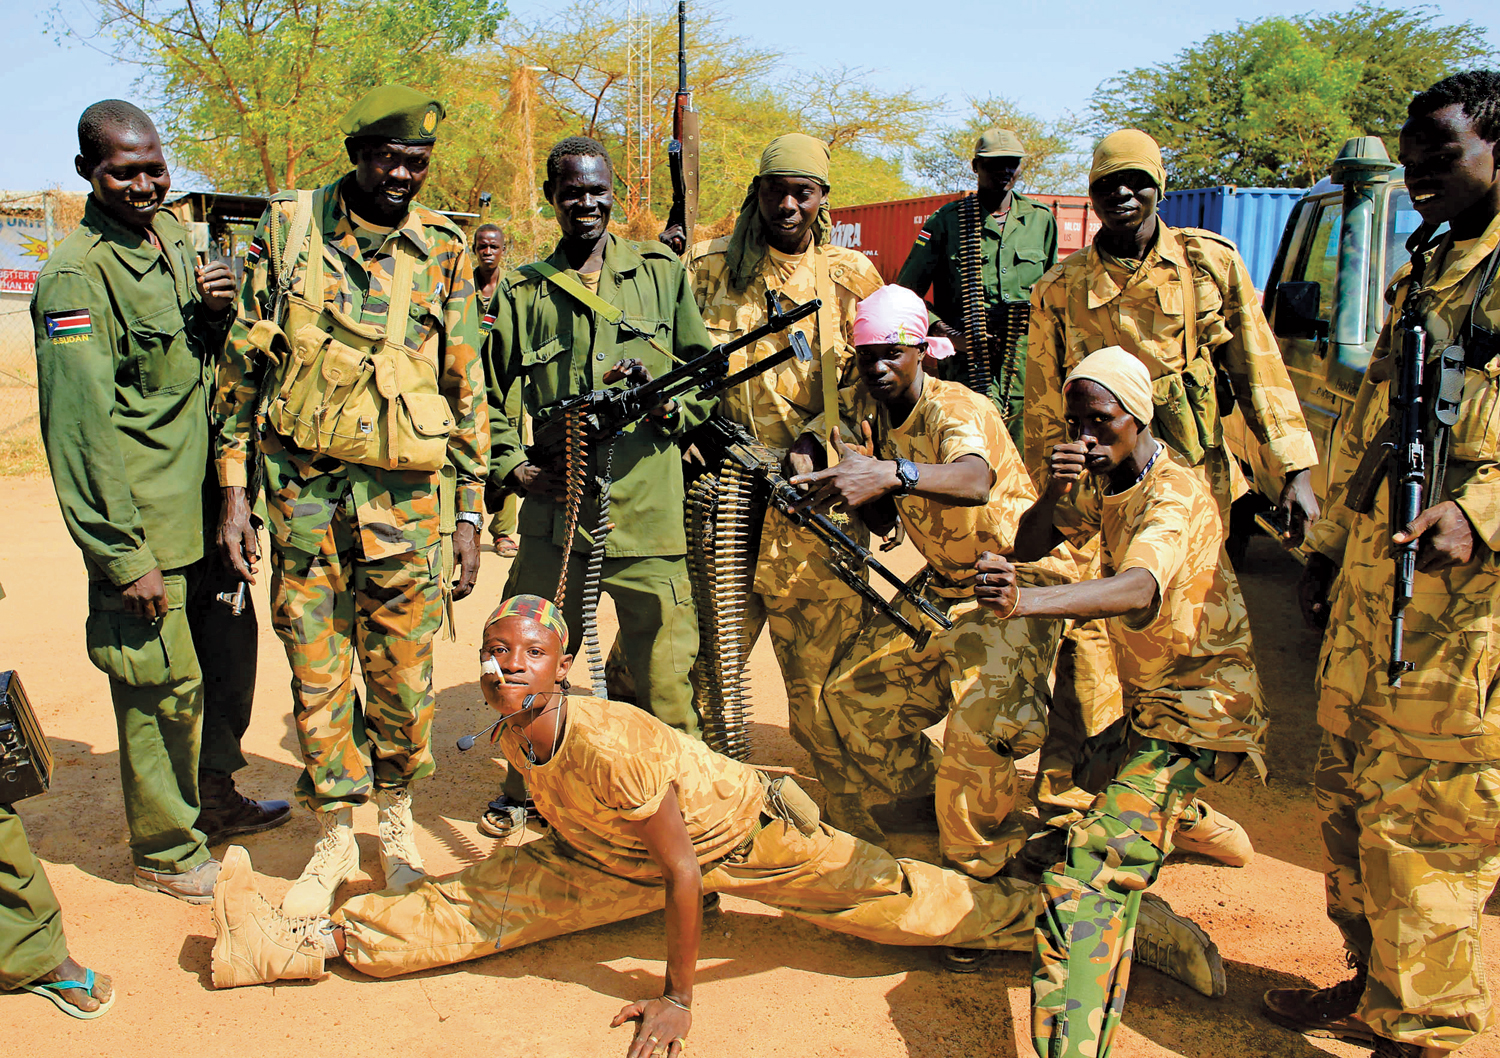 Snapshot-War-Comes-to-South-Sudan